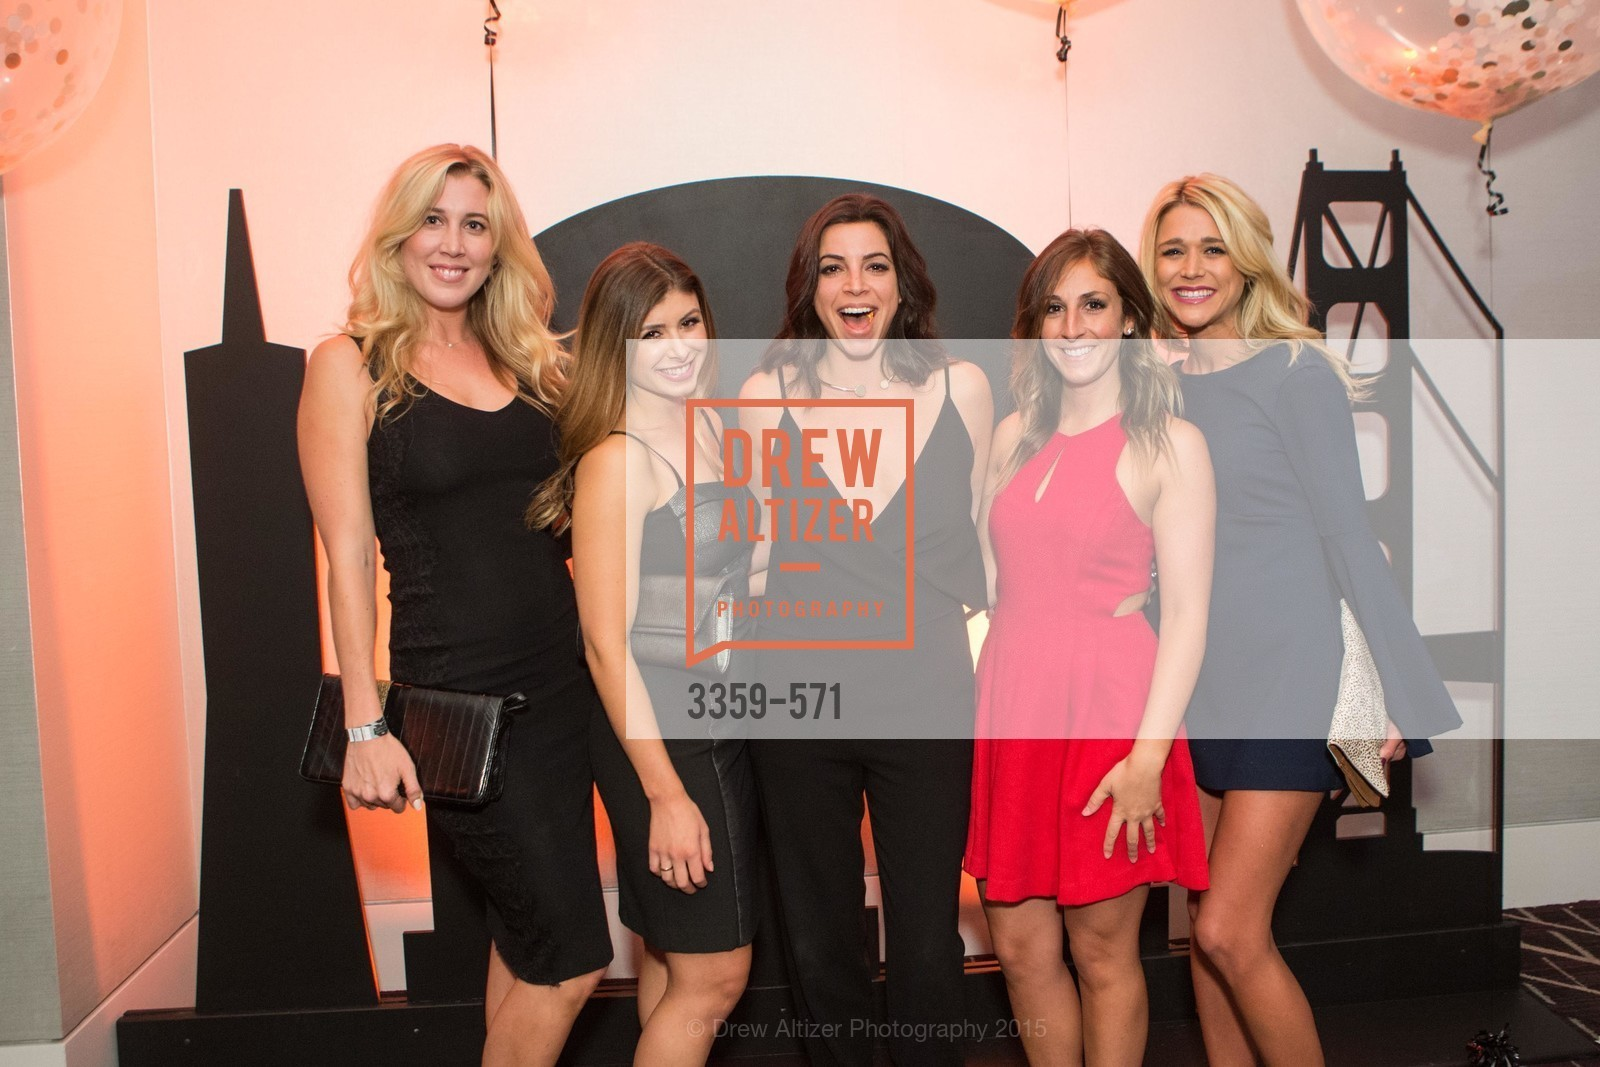 Kelly Connolly, Shira Peleg, Hannah Levin, Emily Hanks, Megan Ortisi, The 10th Annual San Francisco Social, W Hotel. 181 3rd St, November 21st, 2015,Drew Altizer, Drew Altizer Photography, full-service agency, private events, San Francisco photographer, photographer california